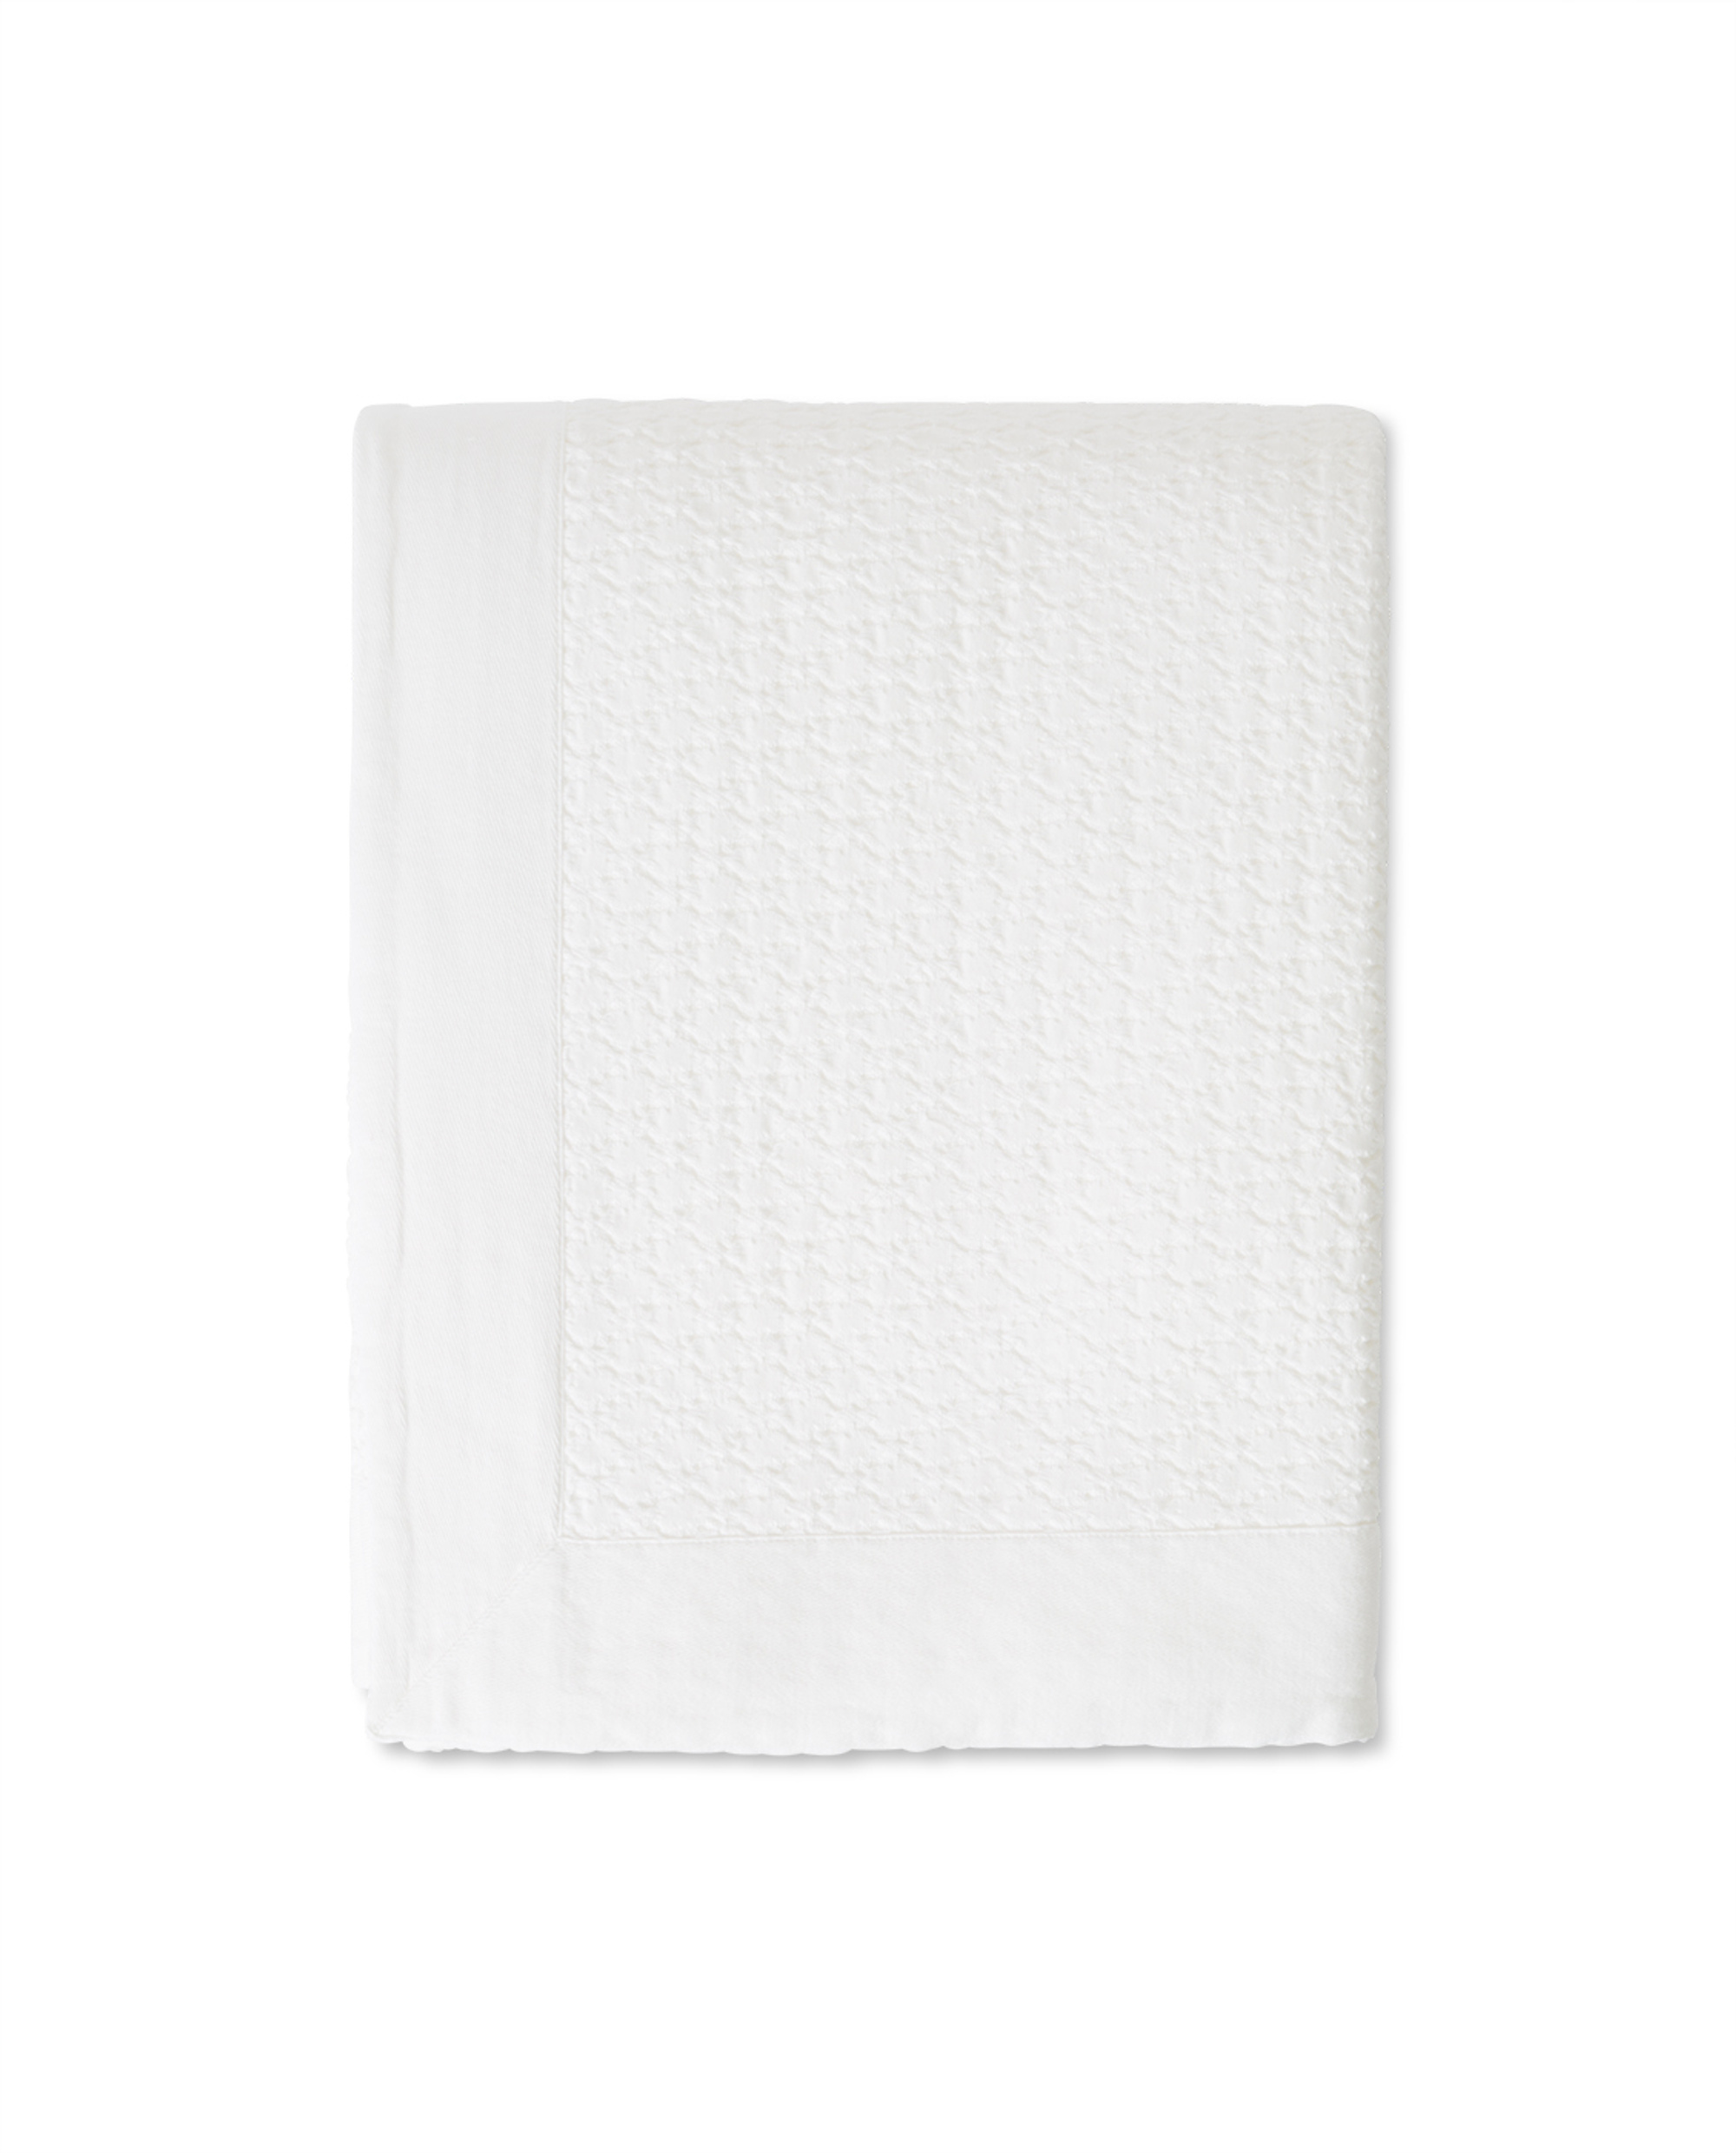 Waffle Structure Organic Cotton Bedspread, White